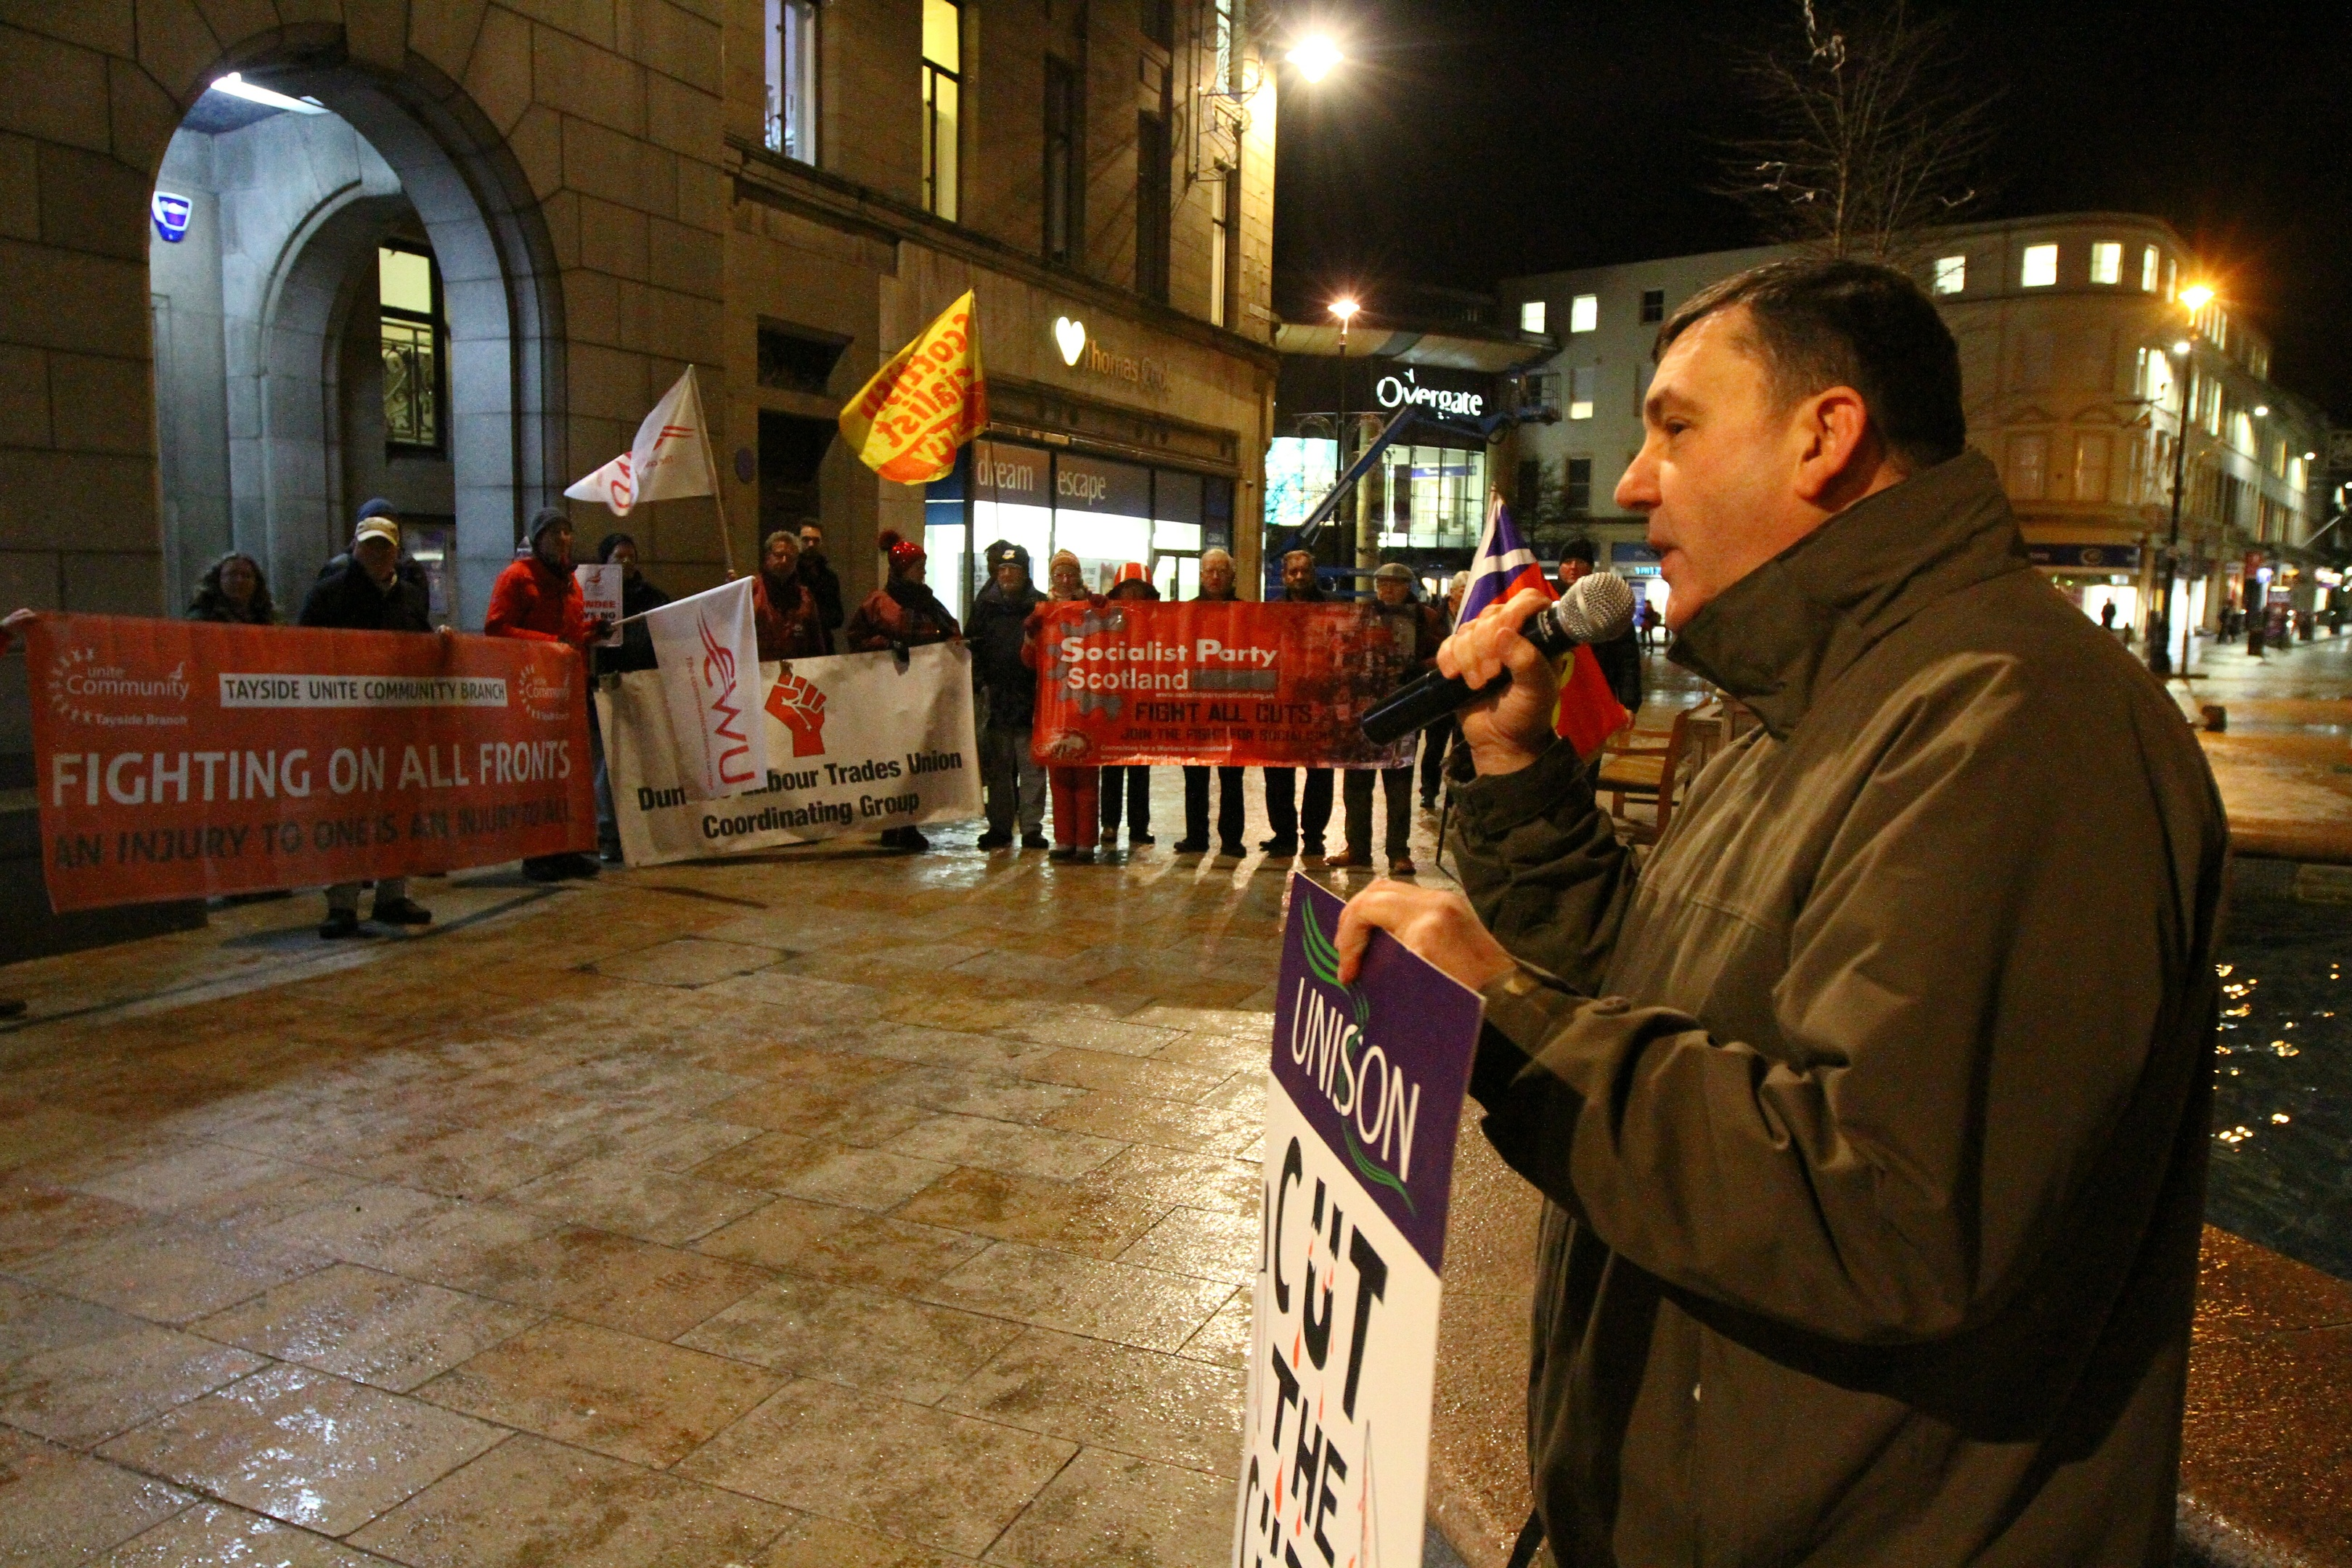 McFarlane OF Dundee City Unison addressing the protesters outside the City Chambers.